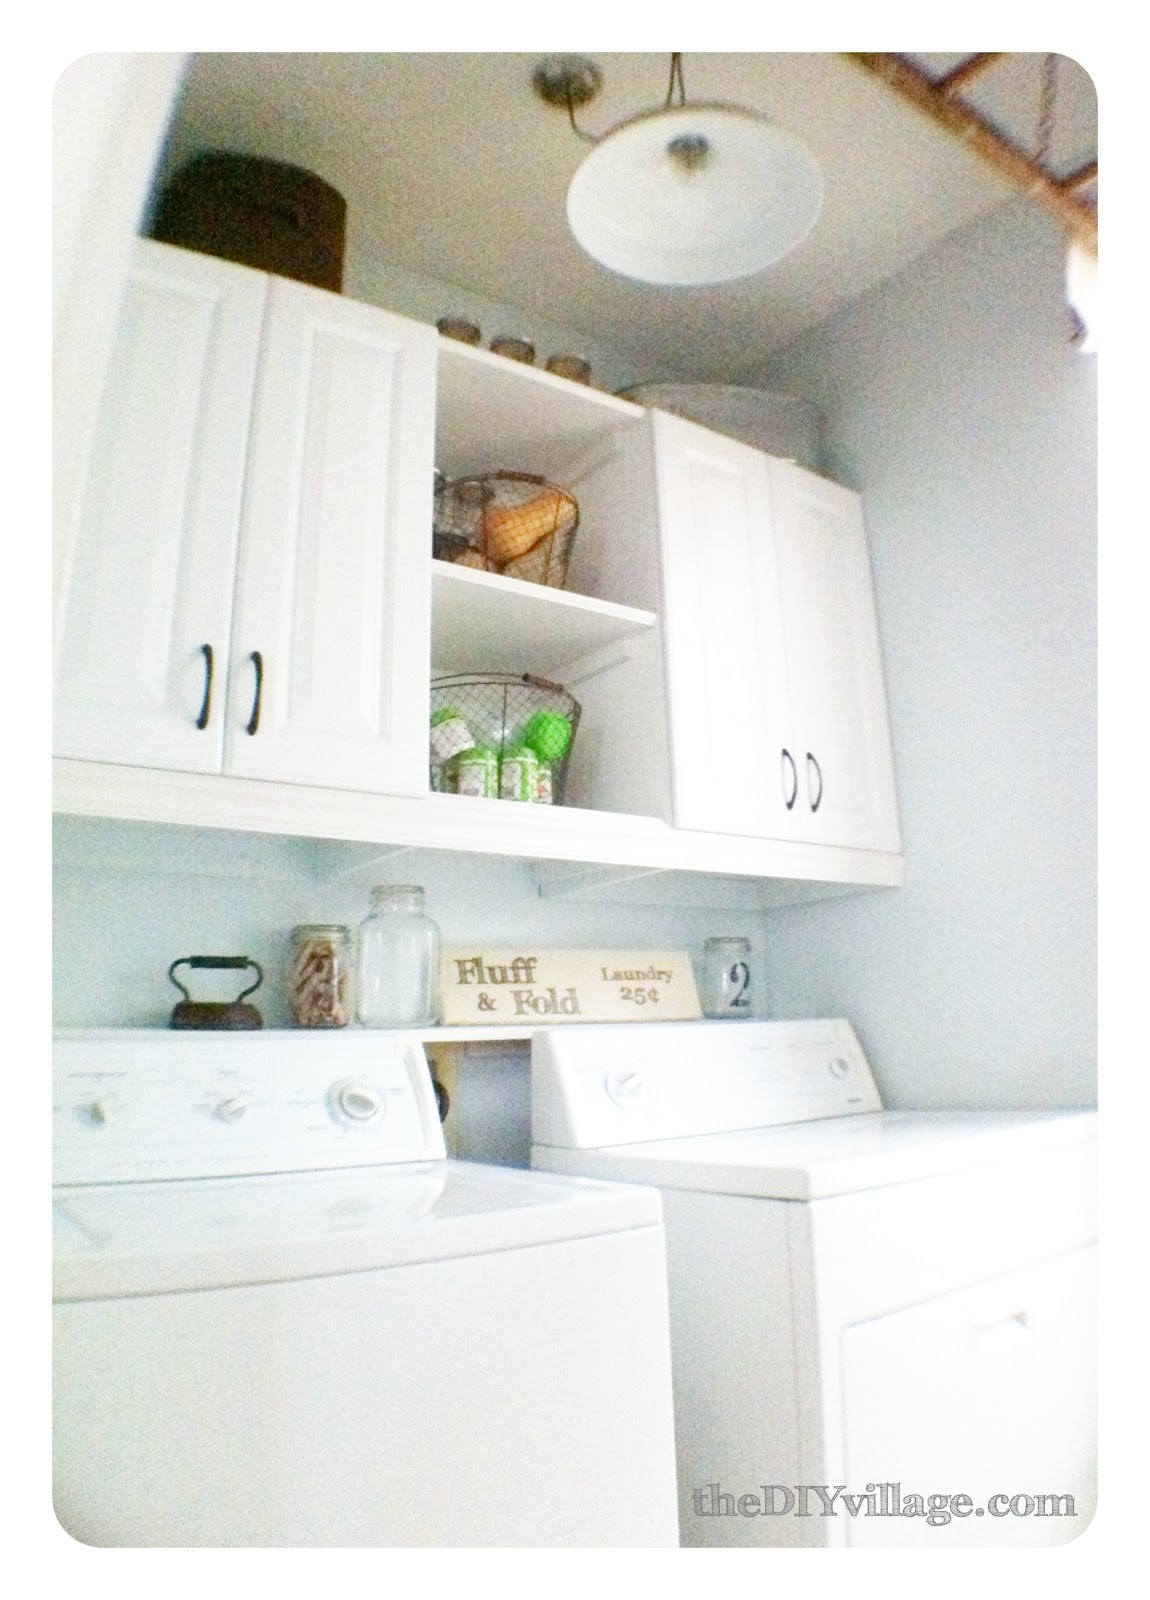 Best ideas about Diy Laundry Room . Save or Pin Laundry Room Makeover the DIY village Now.